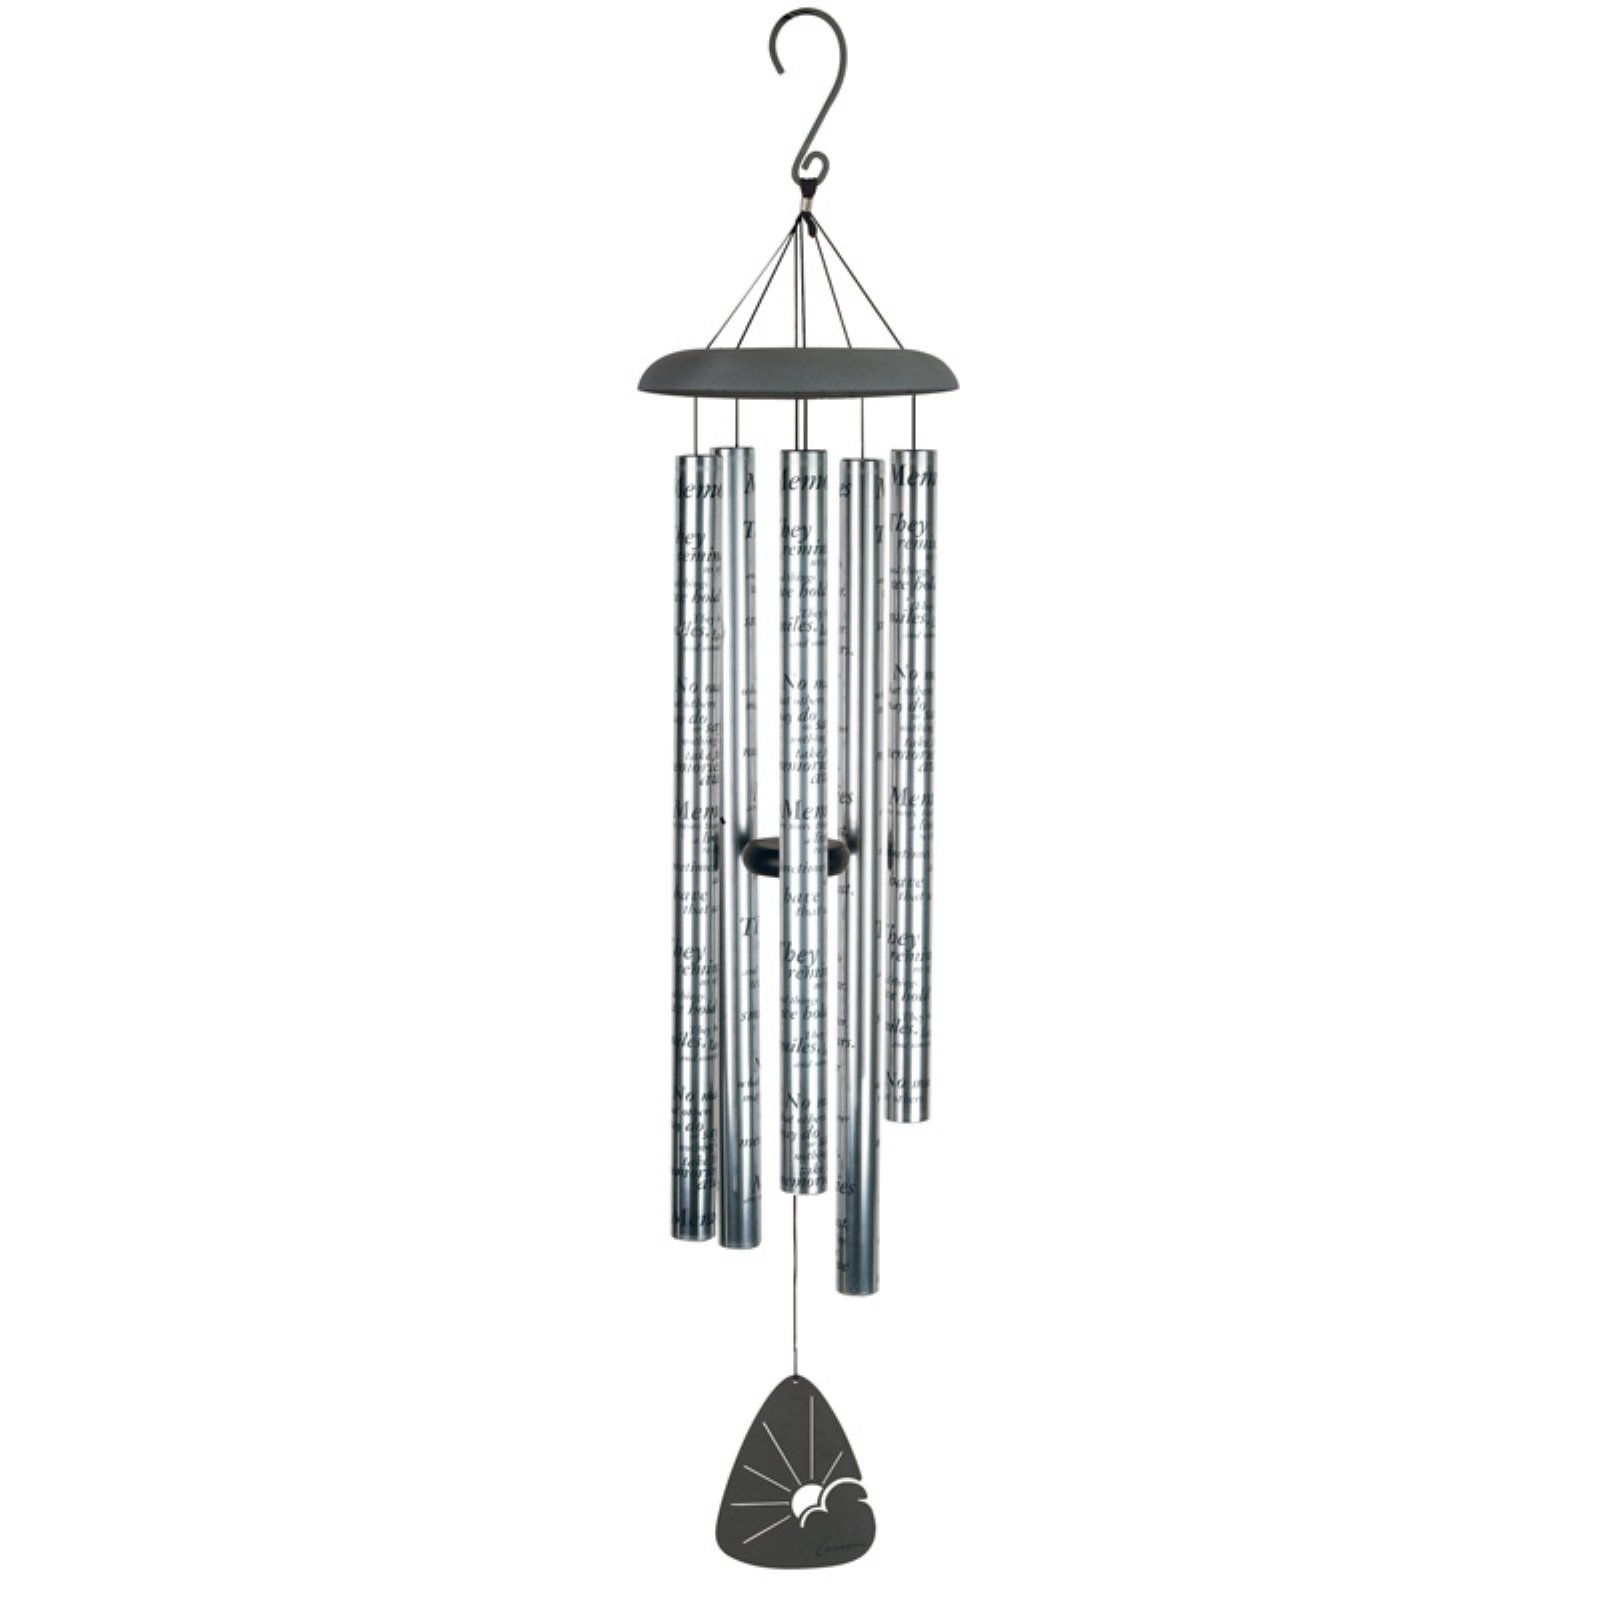 Carson 44 in. Signature Series Memories Wind Chime by CARSON HOME ACCENTS